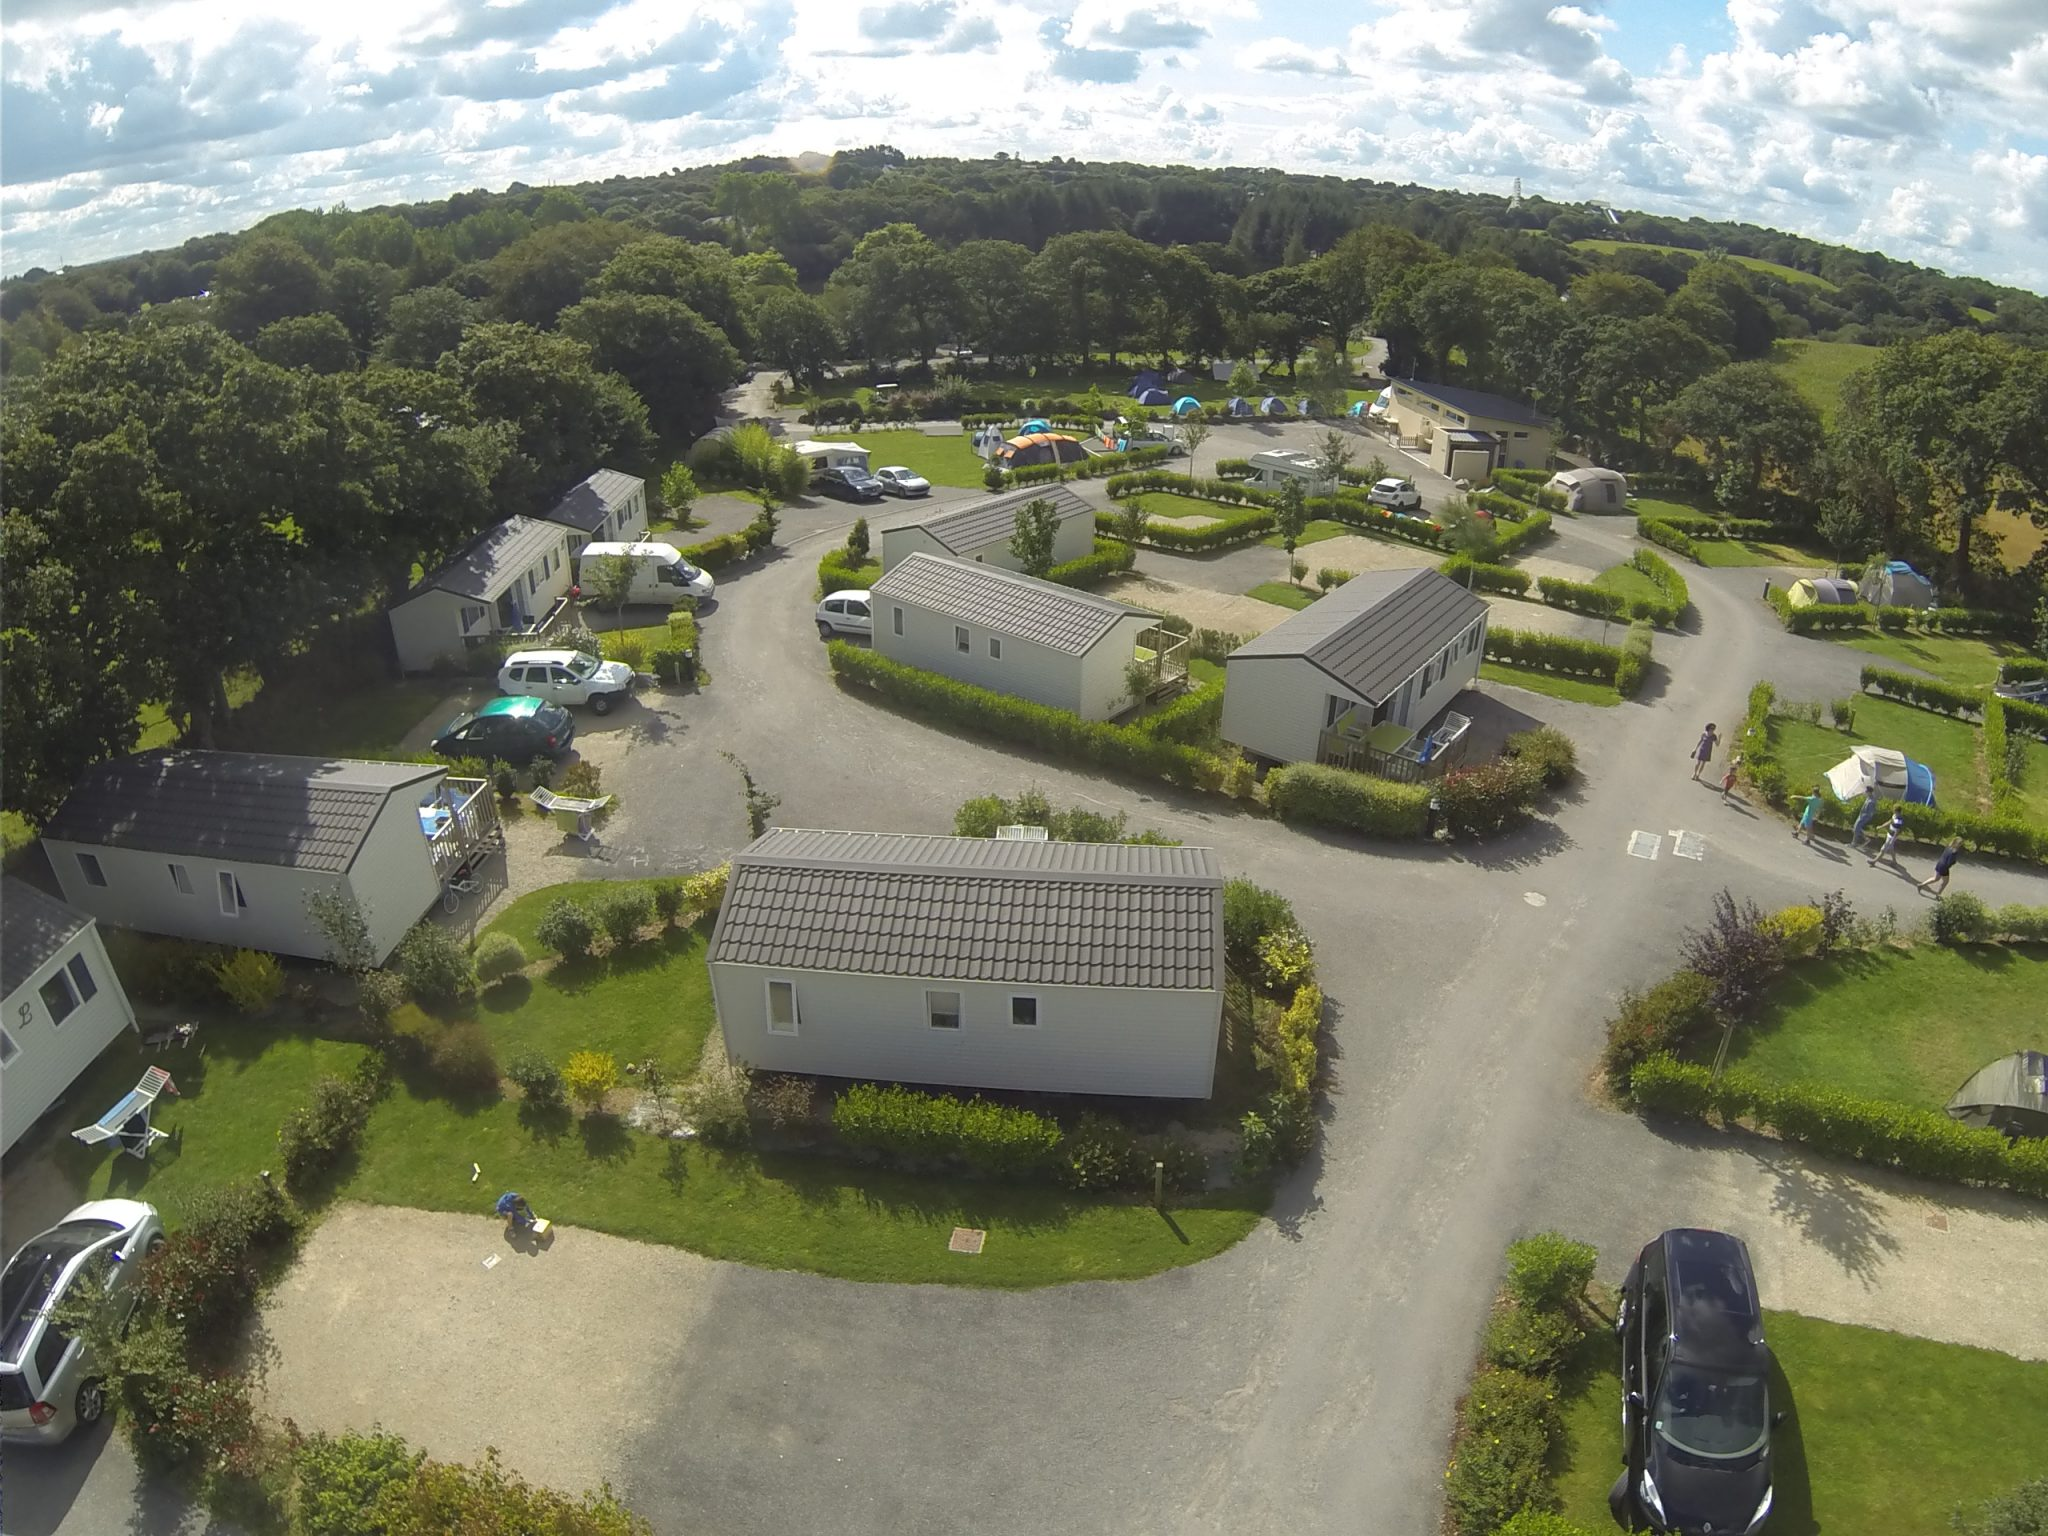 location mobilhome au camping à proximité du parc d'attraction en Bretagne